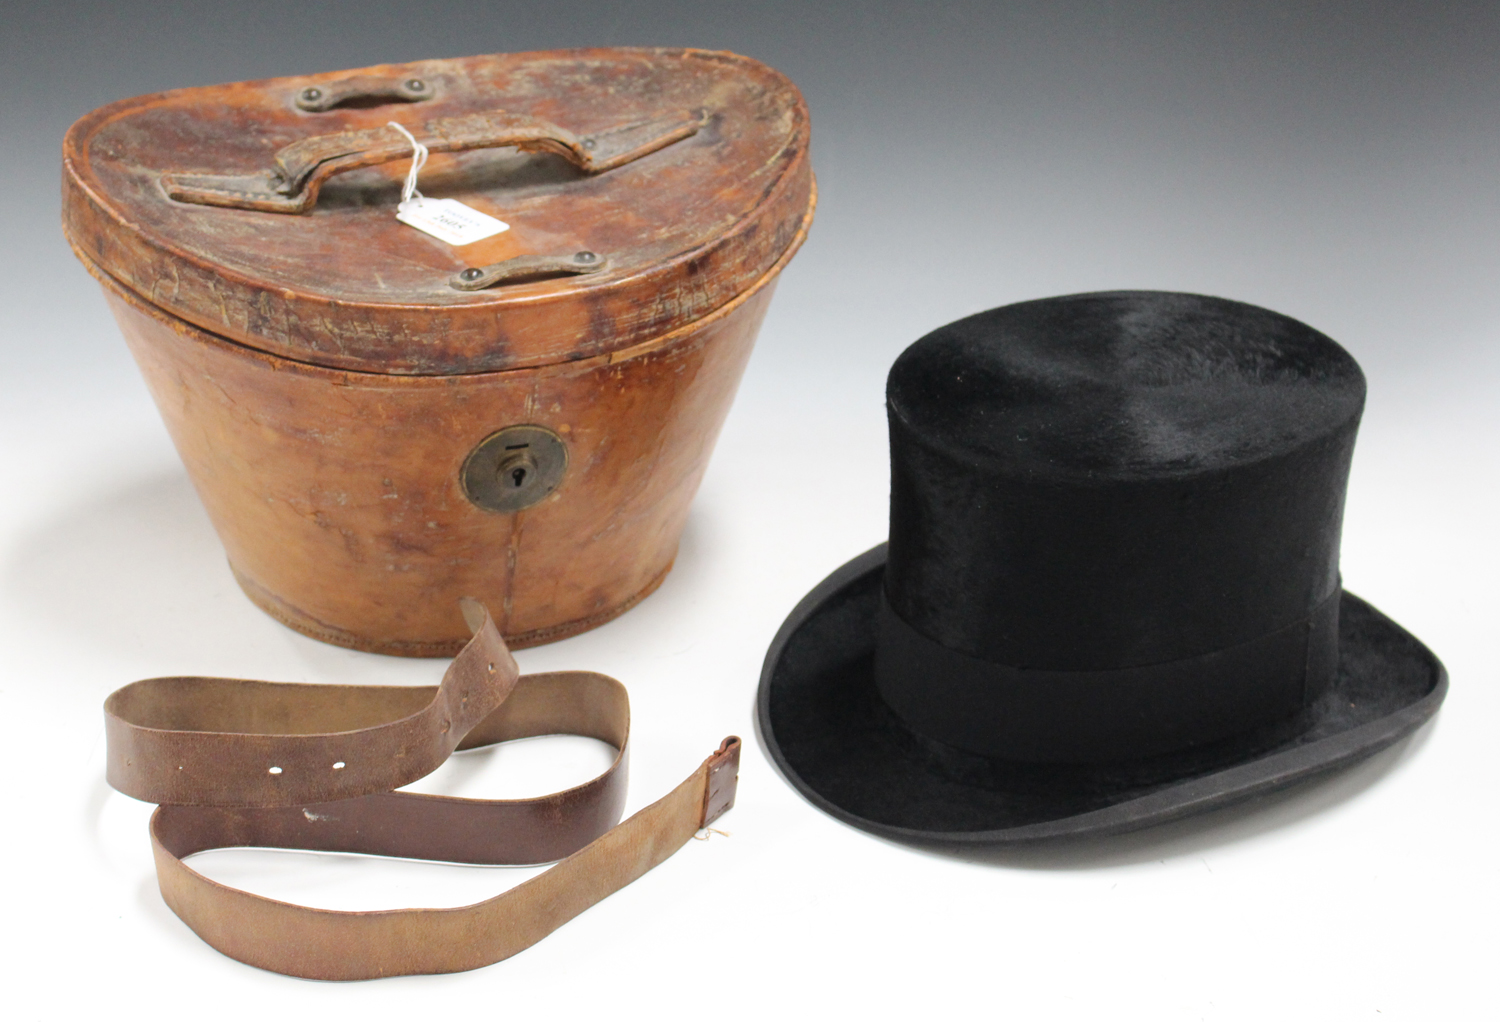 A Black Moleskin Top Hat By Austin Reed Ltd Regent Street Head Circumference 55cm Within A Brown